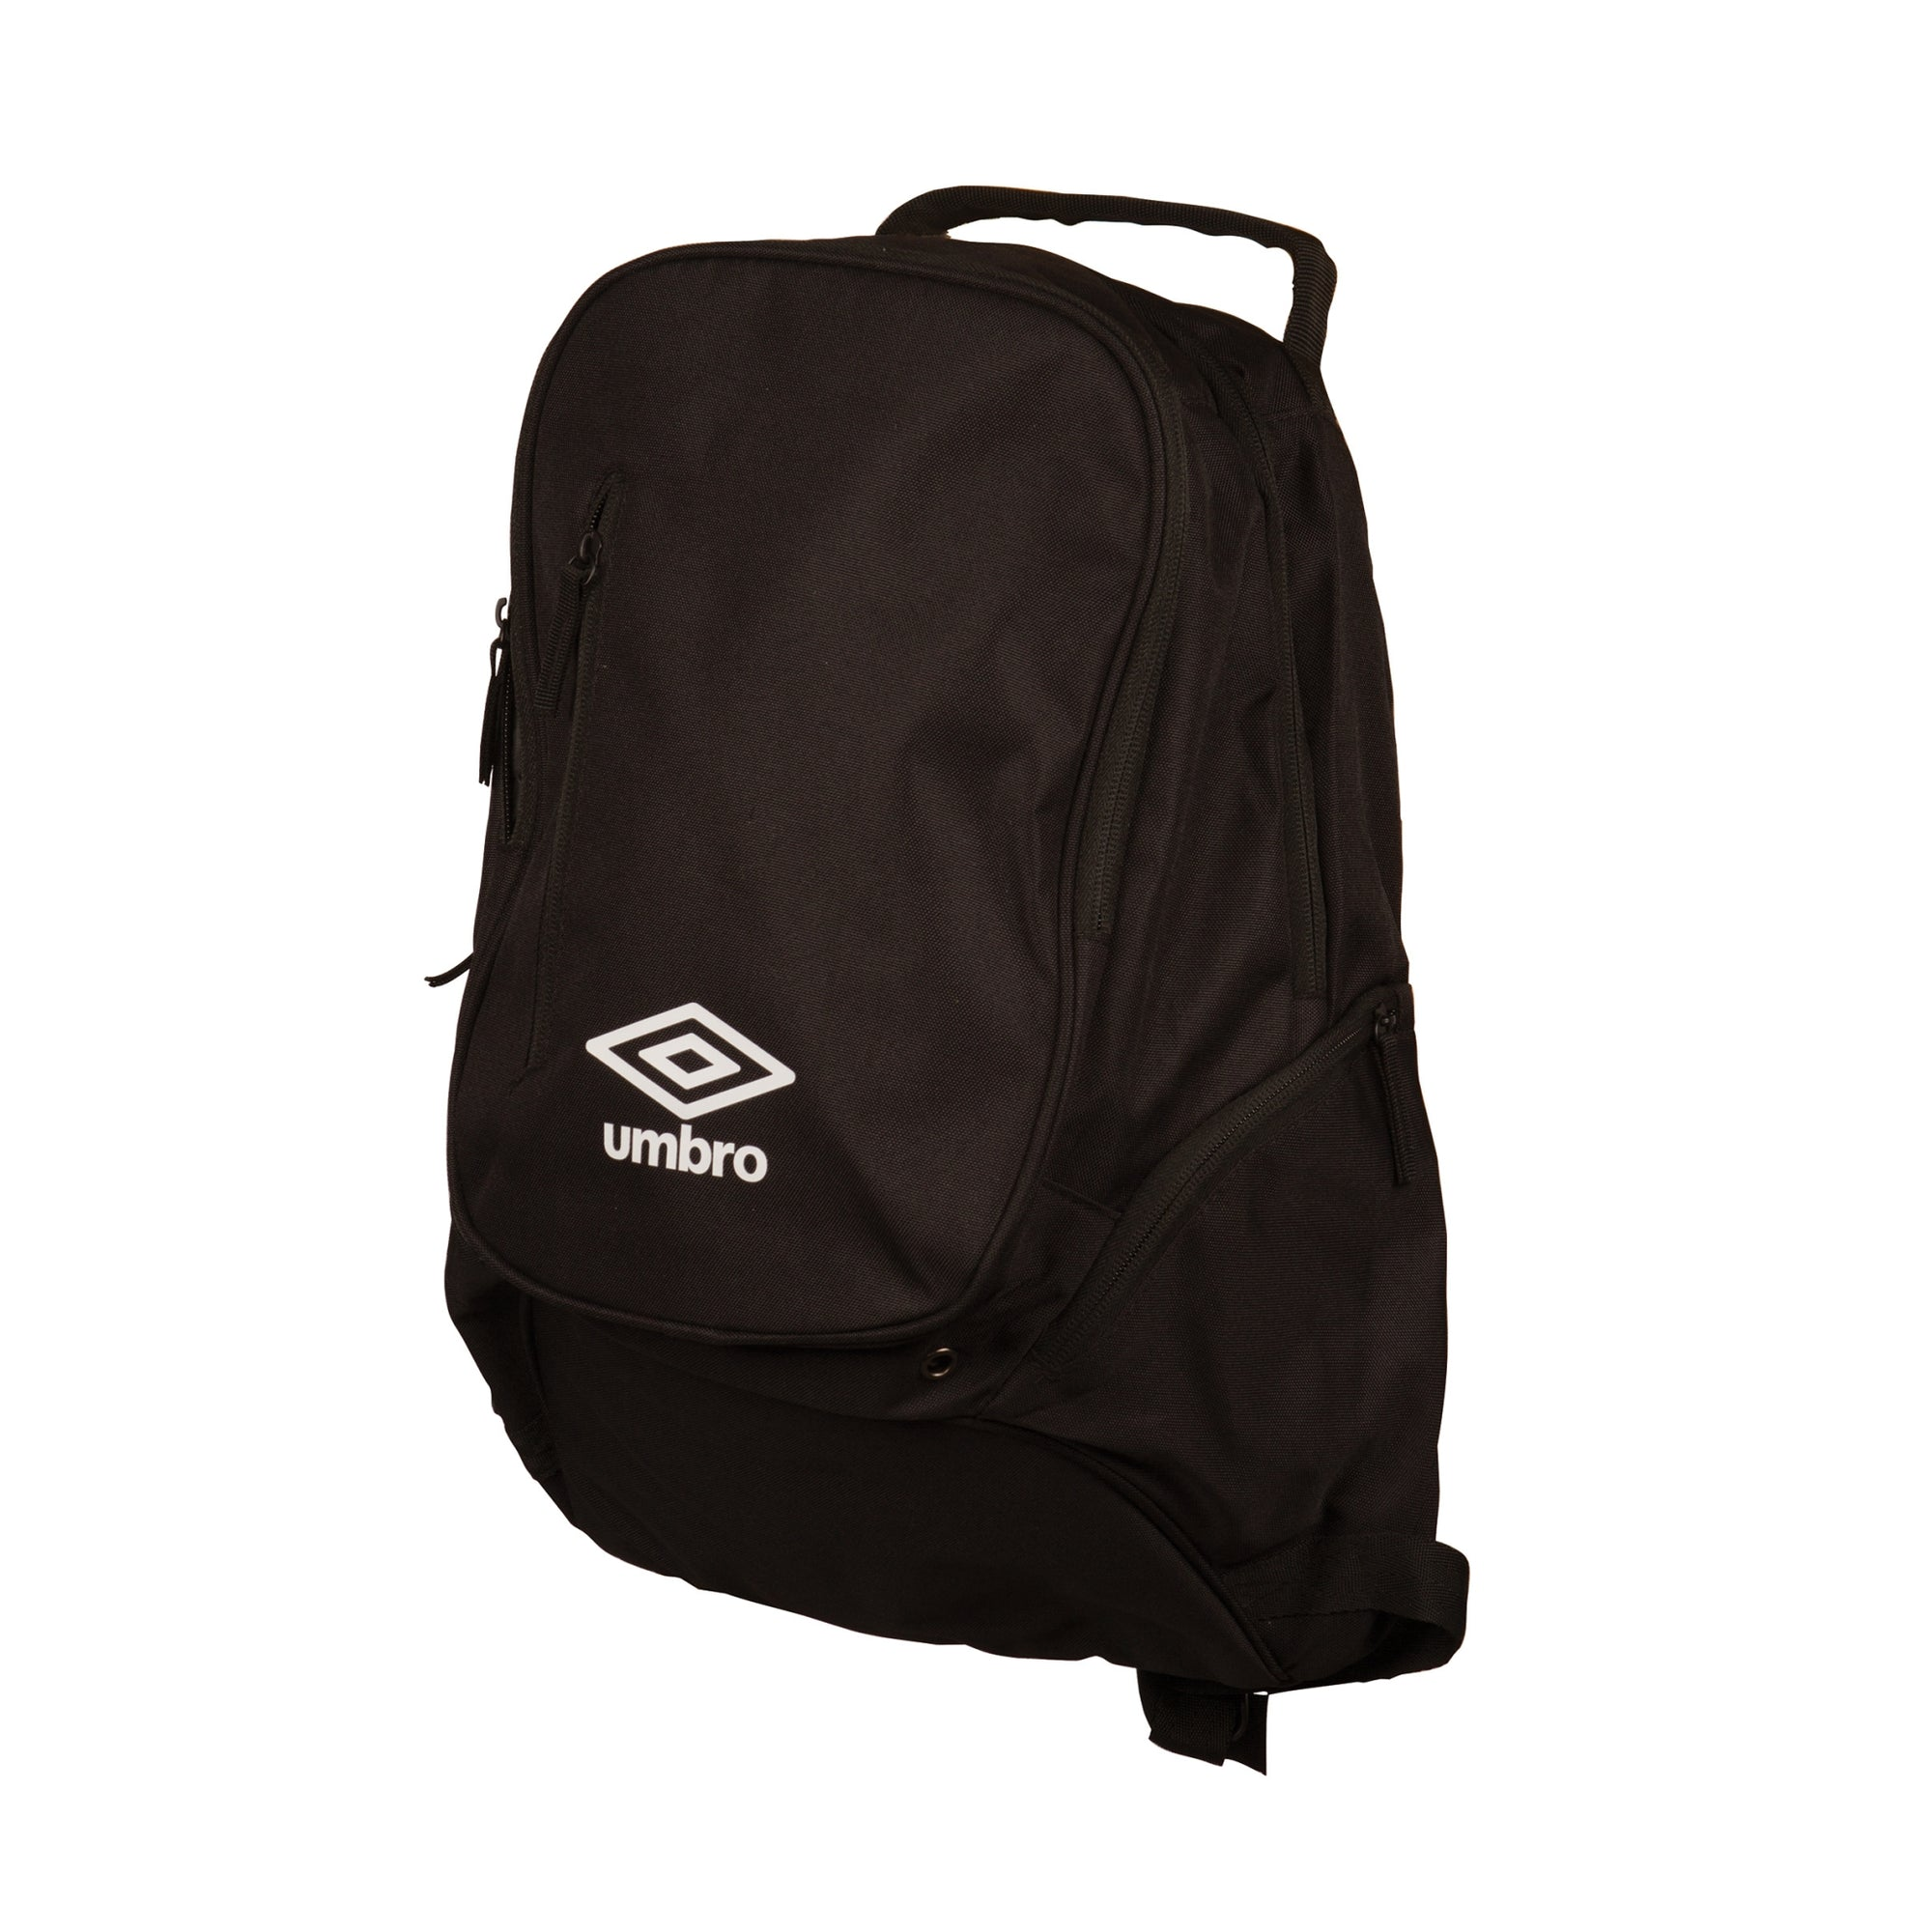 Umbro Large Backpack in black with white Logo to the front. 2 side pockets.